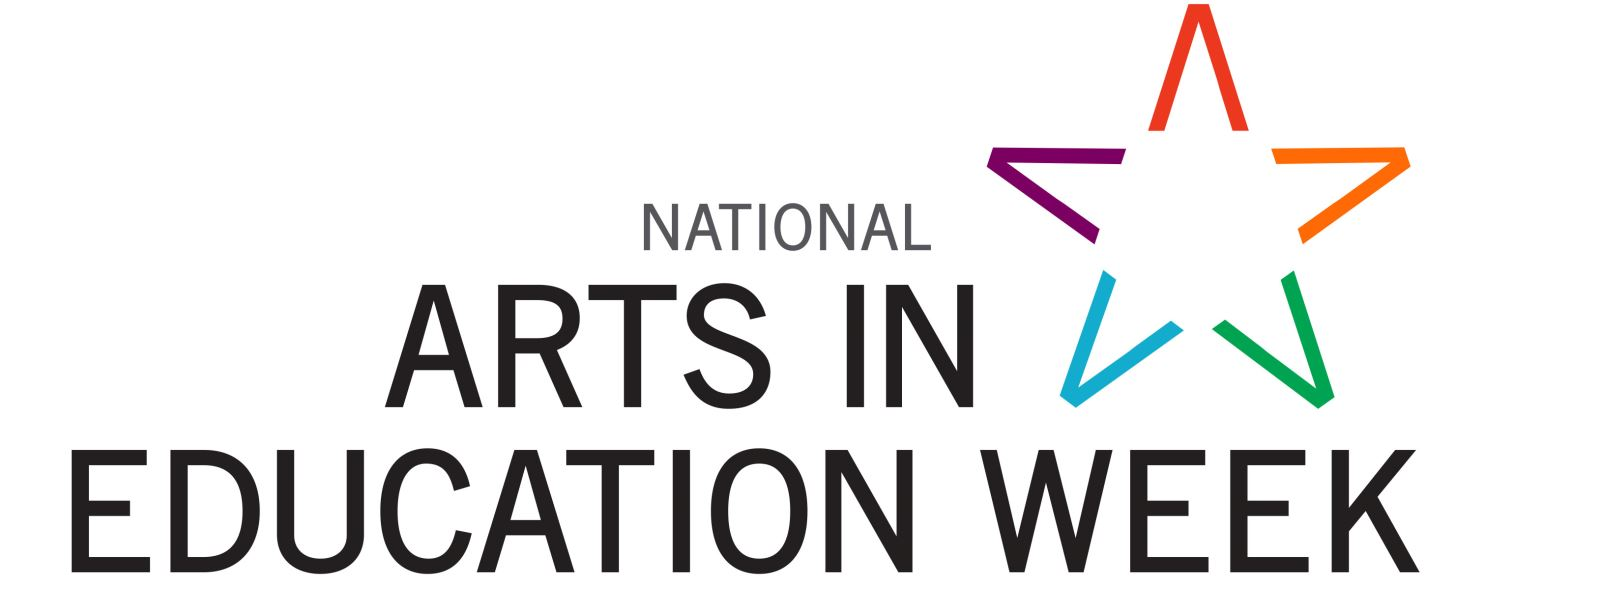 Fall Update from Americans for the Arts : National Arts in Education Week